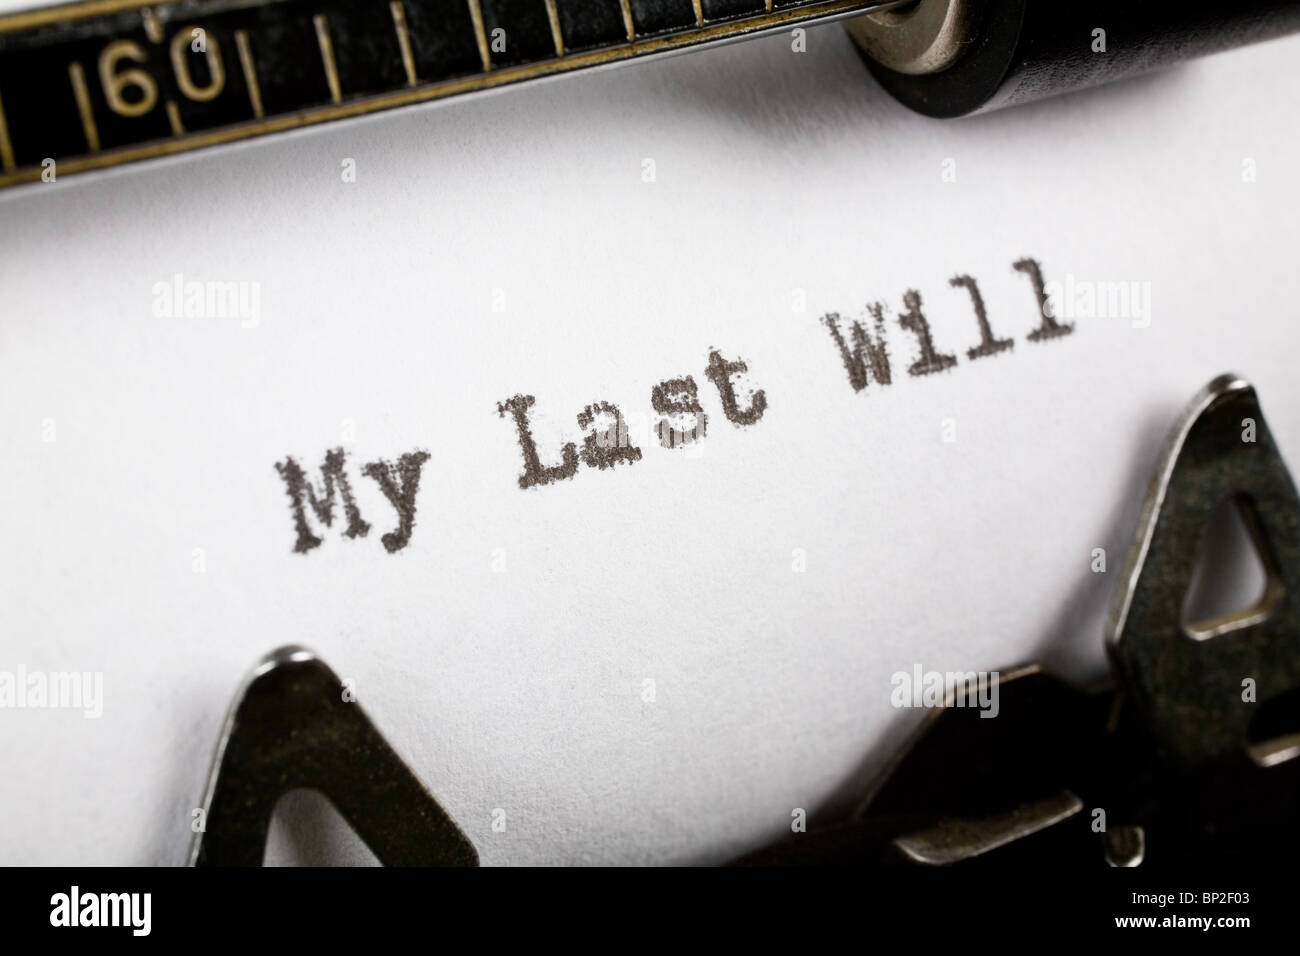 Typewriter close up shot, Concept of last will - Stock Image